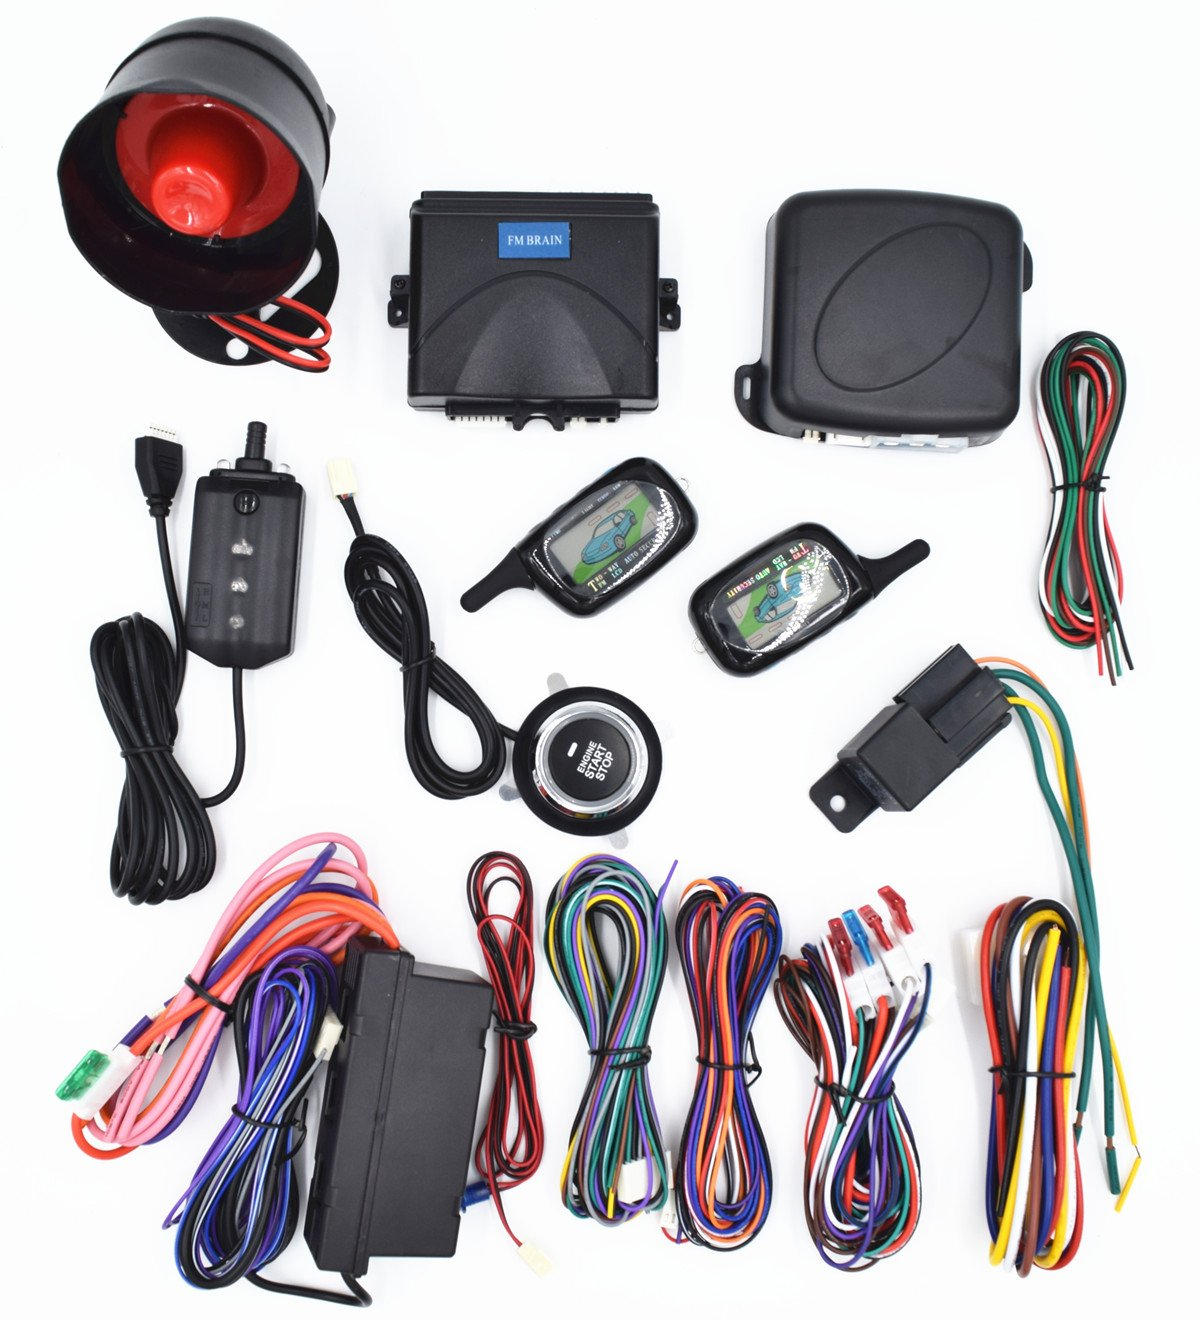 Carbest Vehicle Security Paging Car Alarm 2 Way Lcd 1951 Ferrari Wiring Harness Sensor Remote Engine Start System Kit Automatic One Button